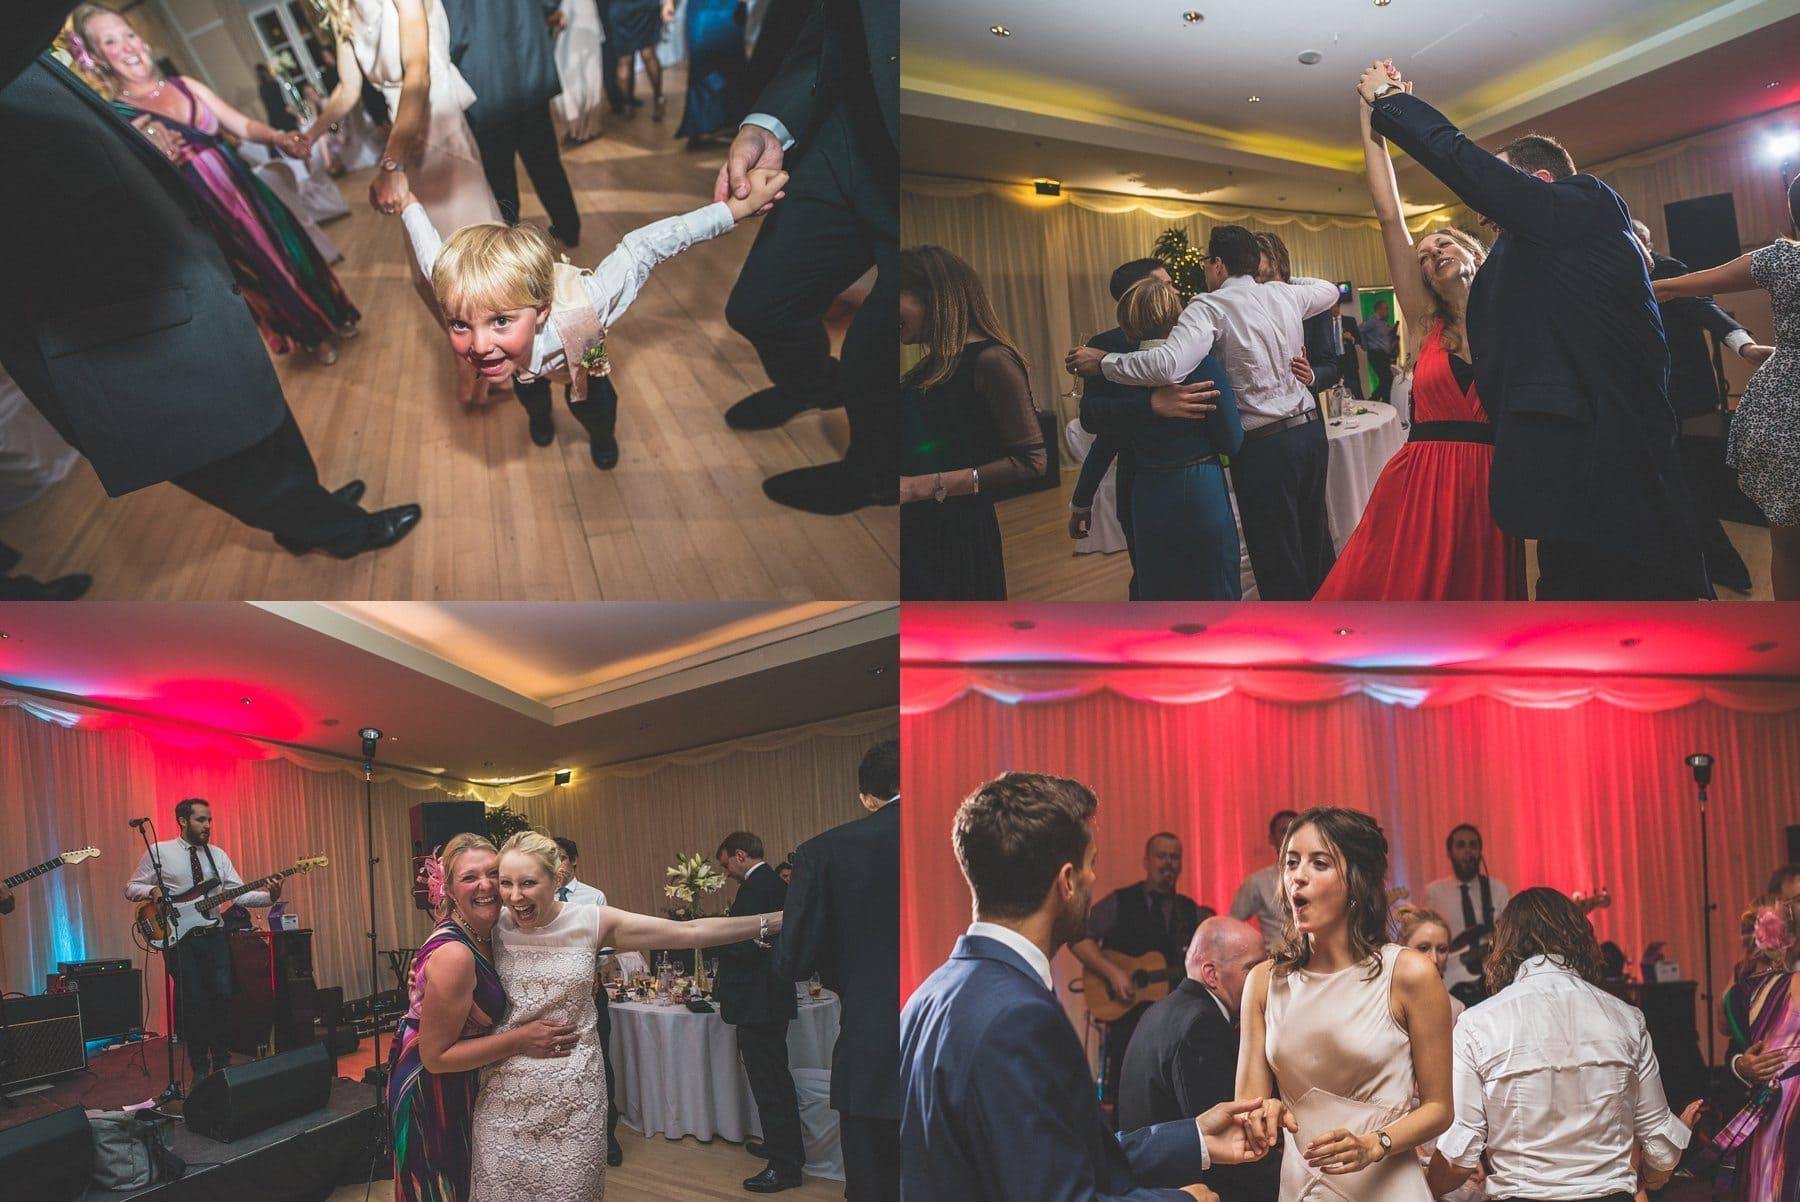 Wedding guests dancing wildly at The Hurlingham Club glamorous music themed Chelsea wedding